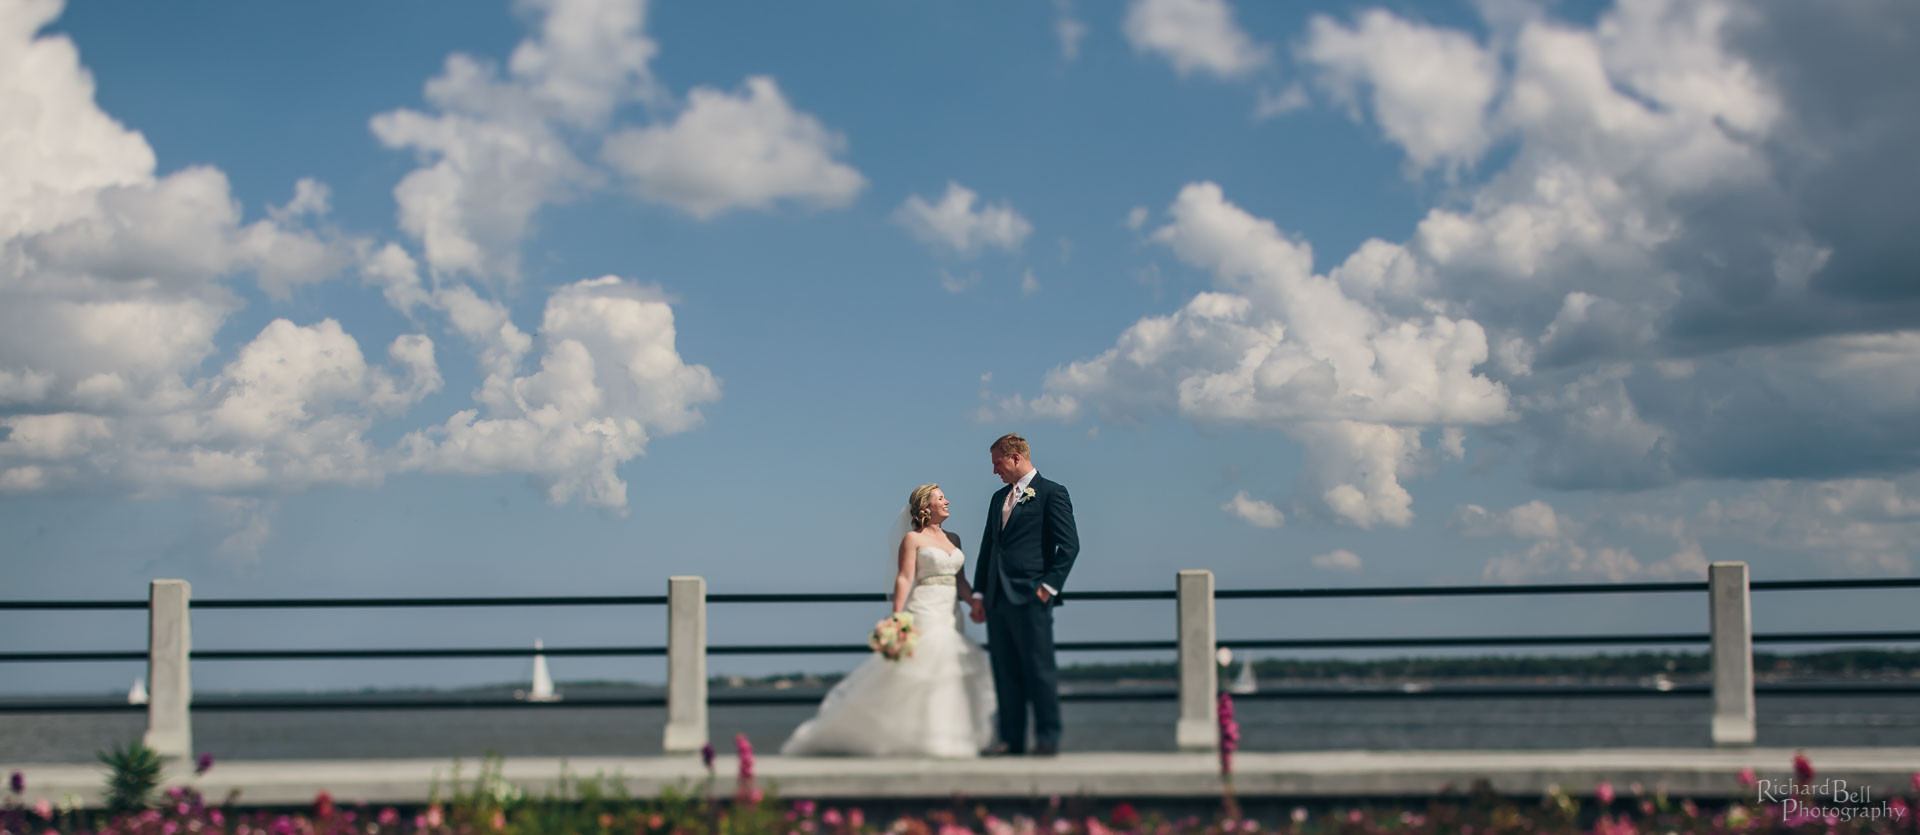 Bride and Groom at Battery